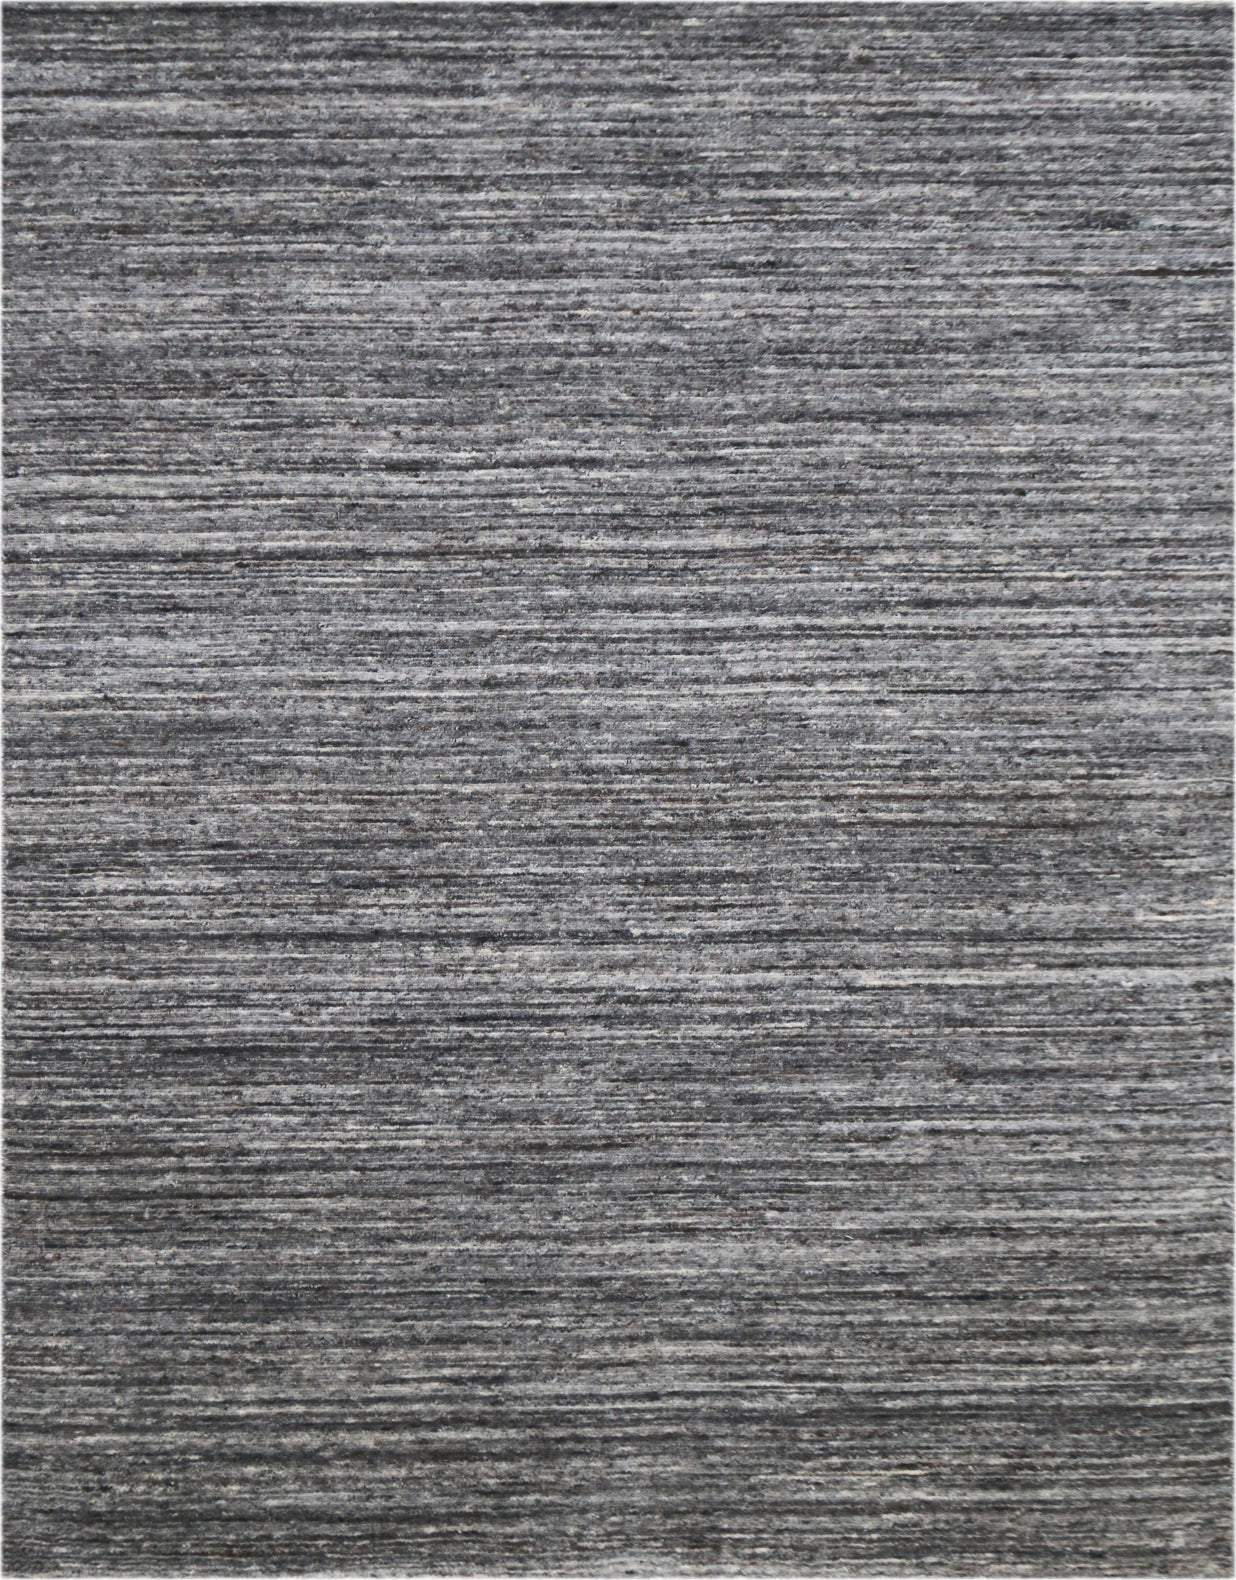 Amer Heaven HEA-6 Black Area Rug main image